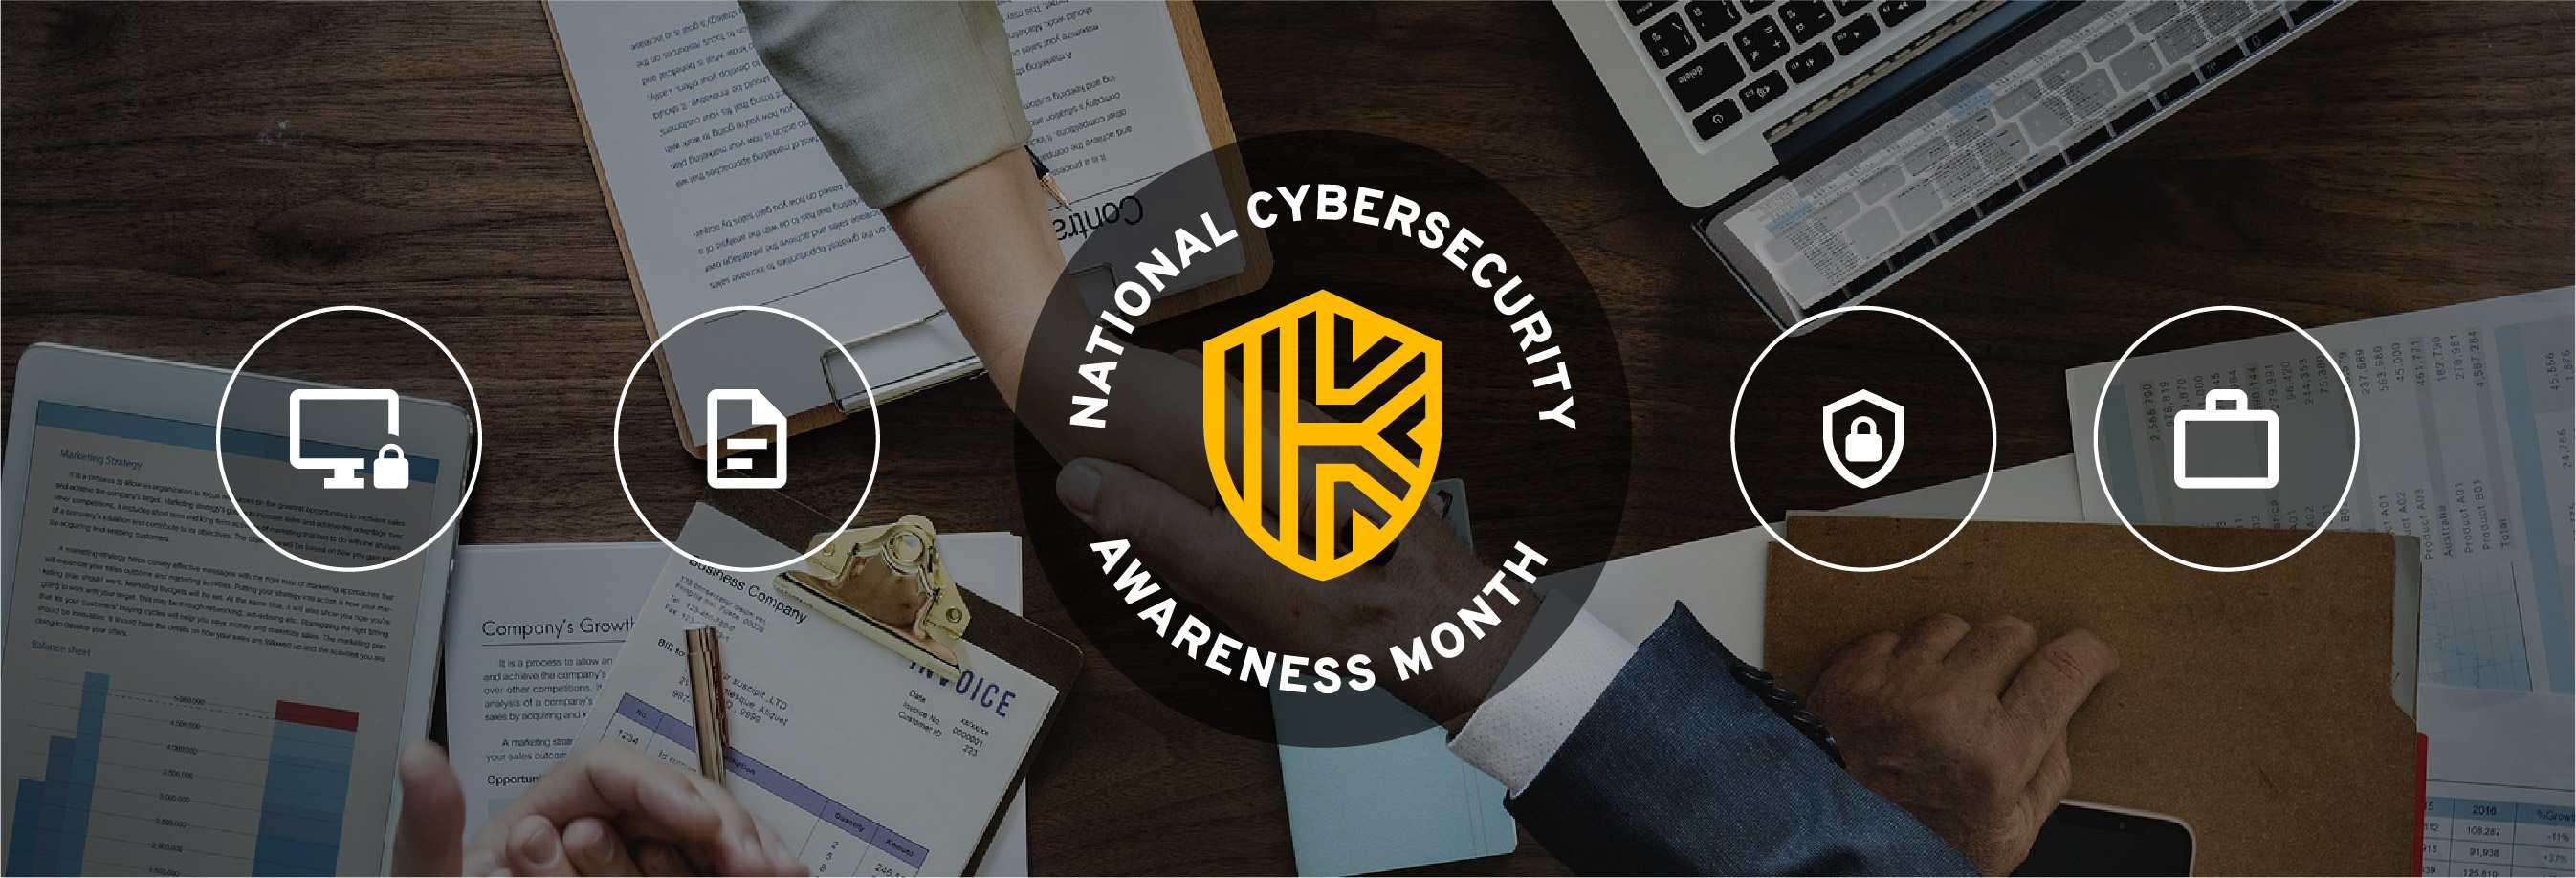 #NCSAM Tip: Poor Employee Password Habits Open SMBs to Cyberattacks